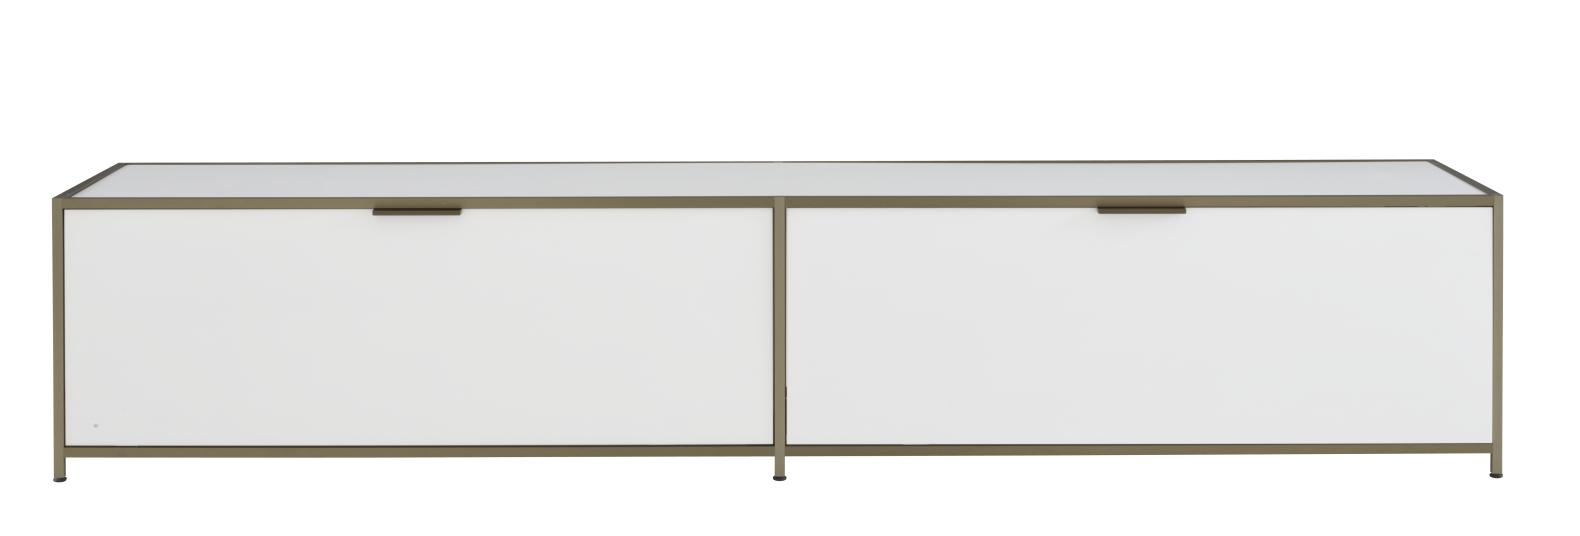 BENCH UNIT 2 FLAP DOORS WHITE LACQUER Ligne Roset